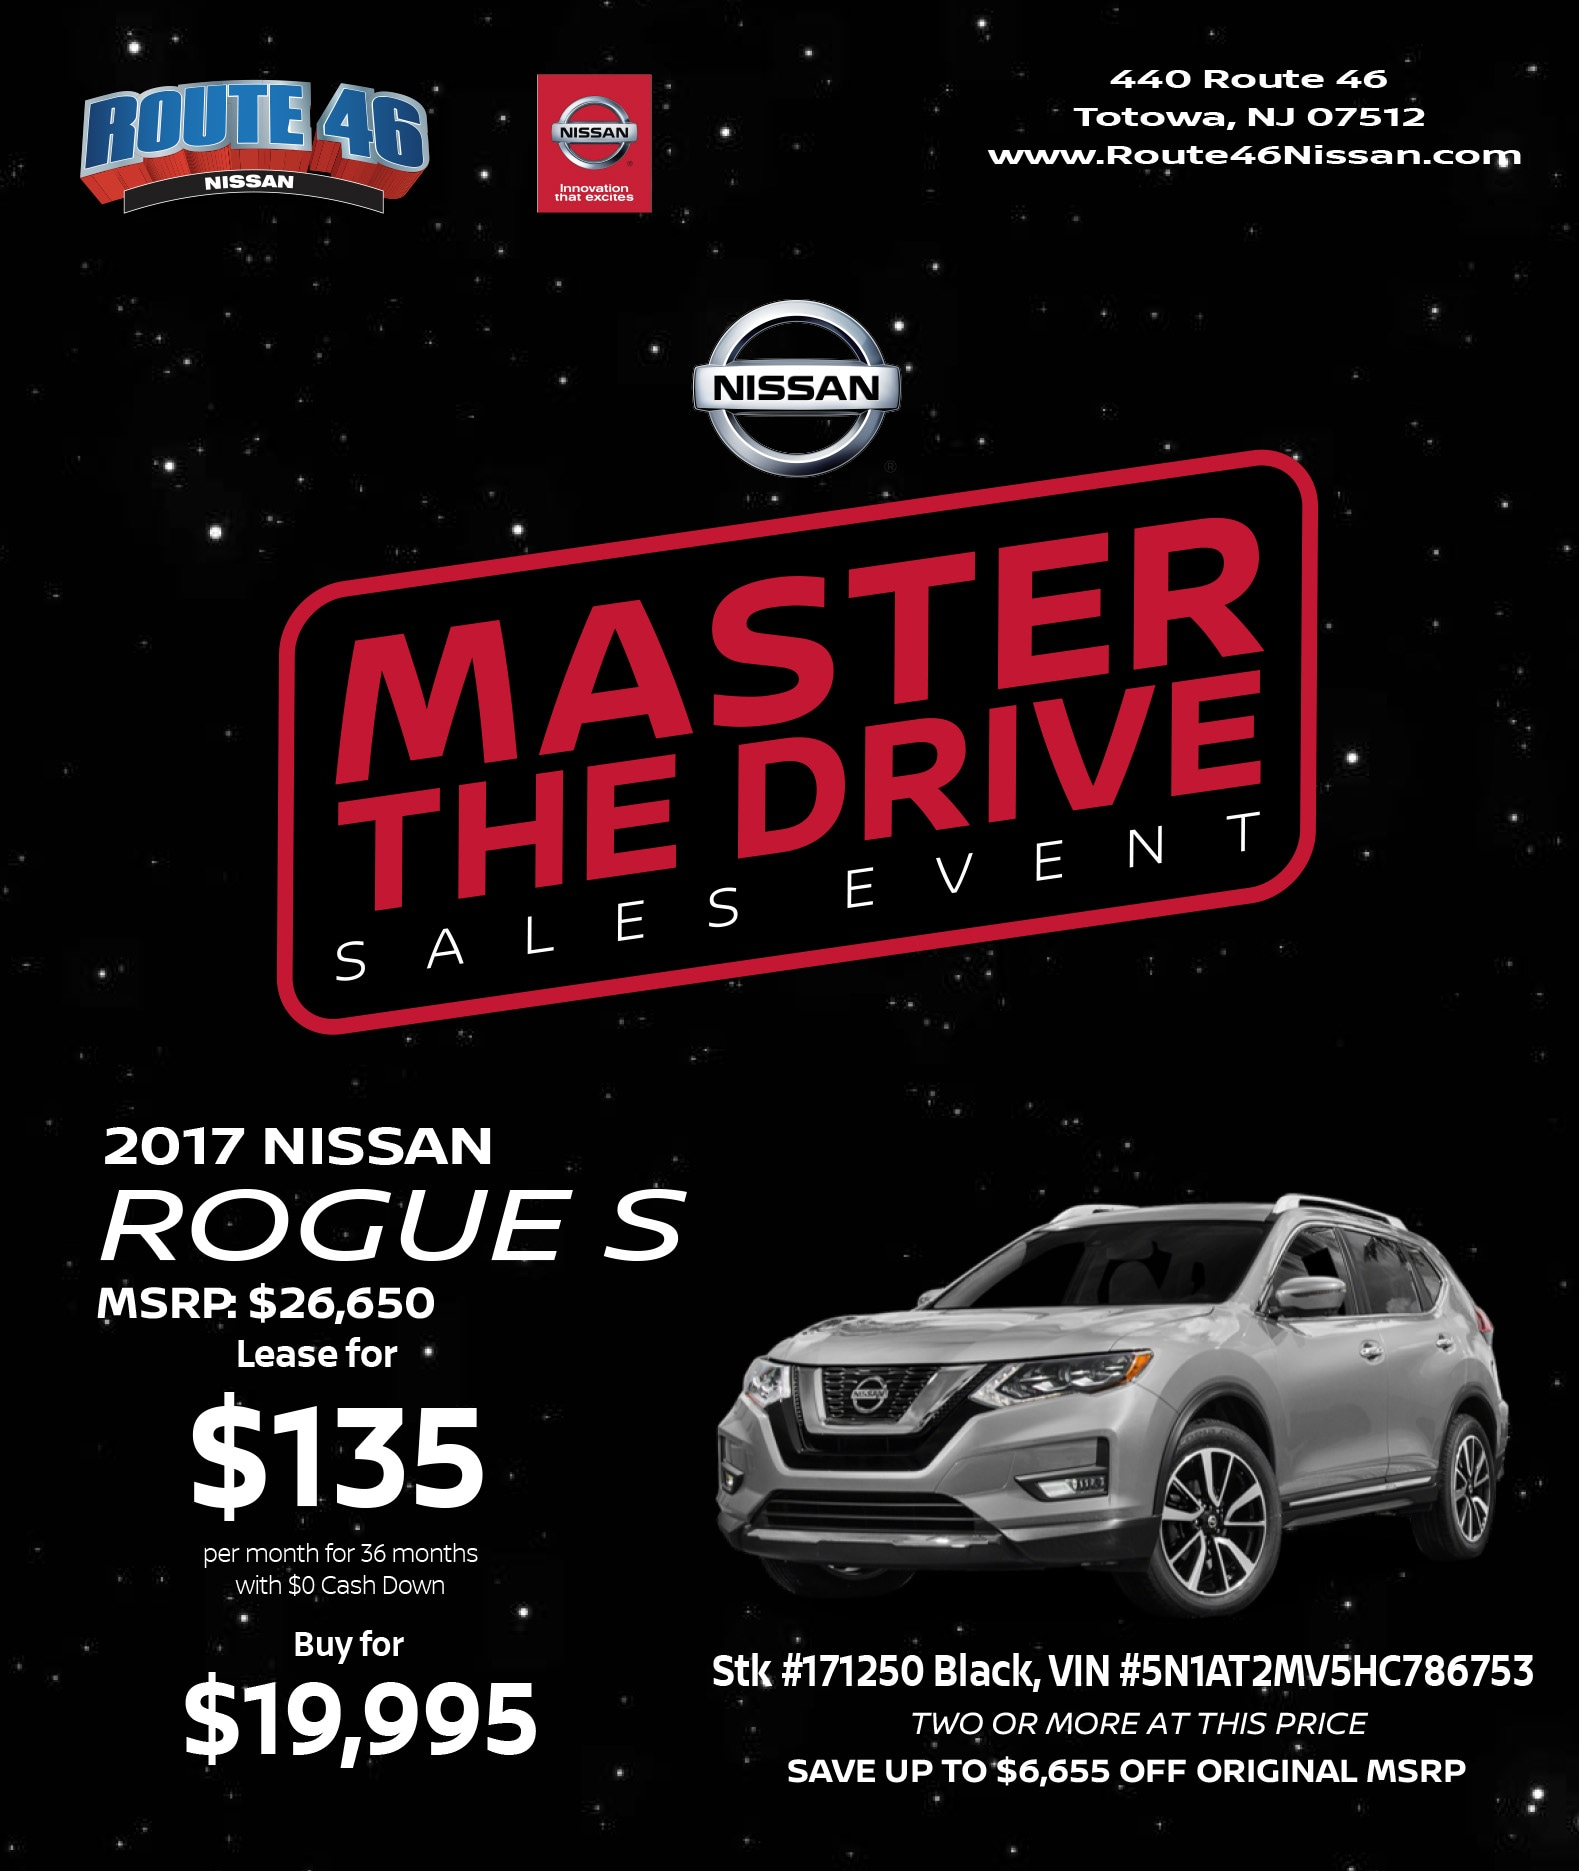 Route 46 Nissan | New Nissan dealership in Totowa, NJ 07512